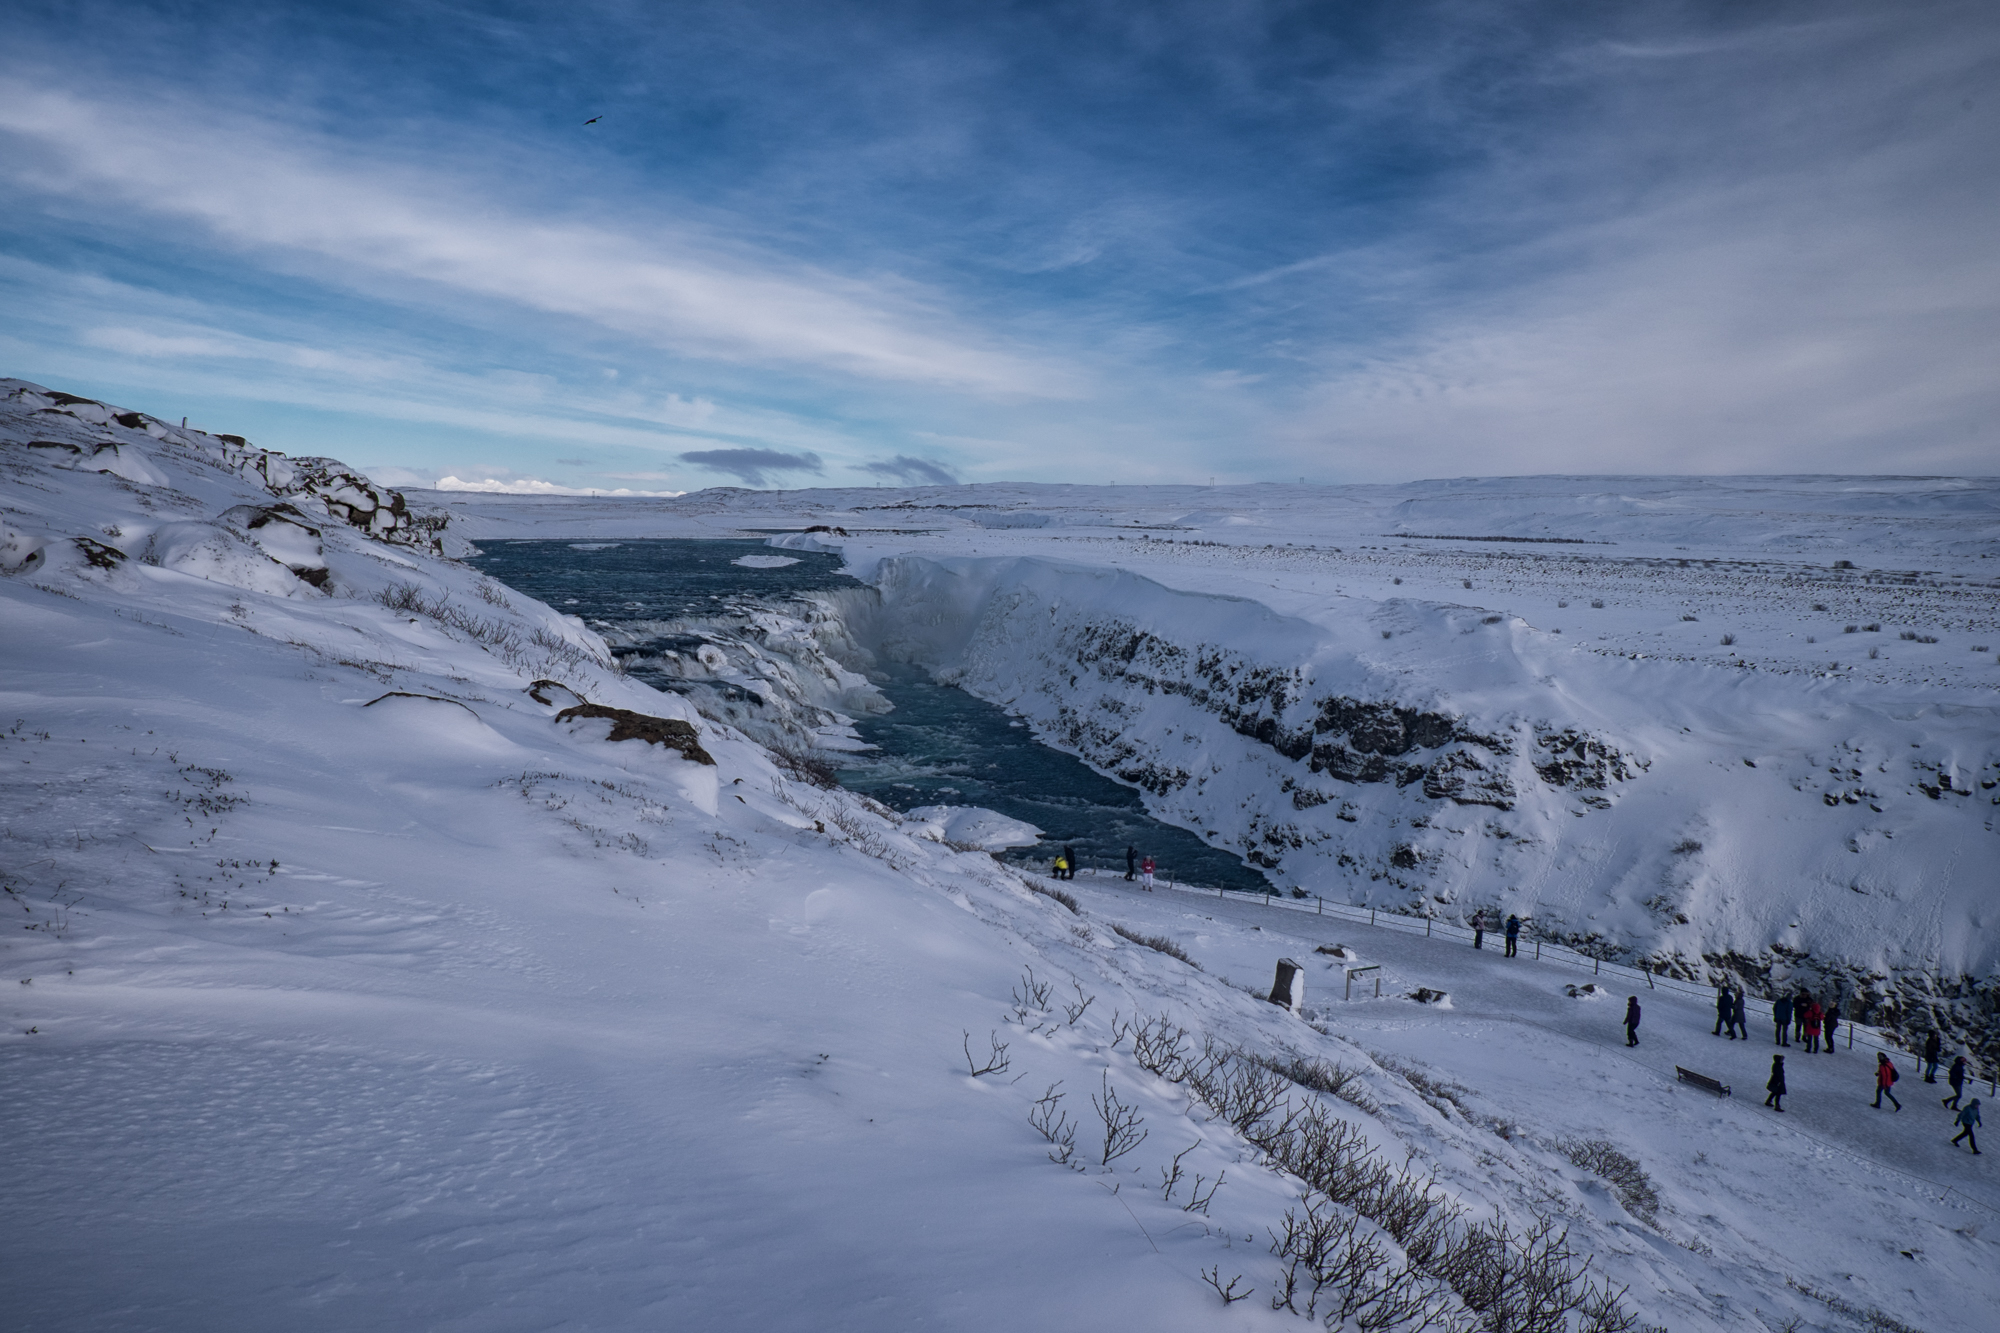 Gulfoss Iceland Northern Ireland Landscape Photographer-23